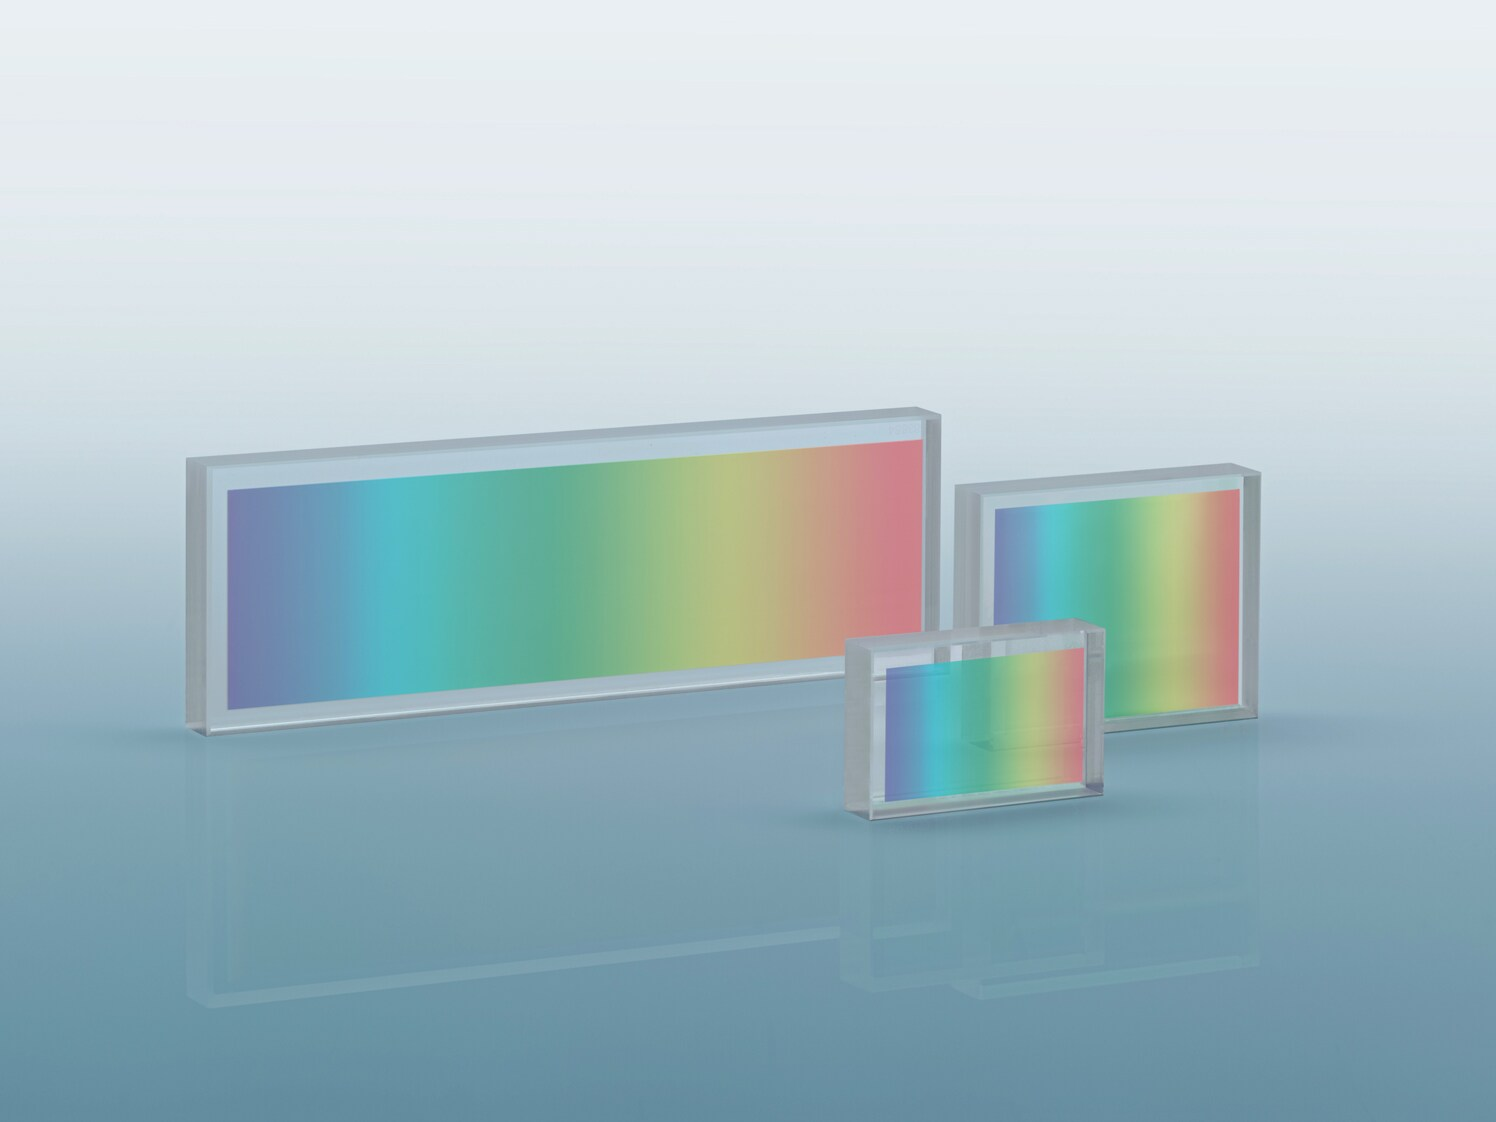 Optical gratings for  diffracting light